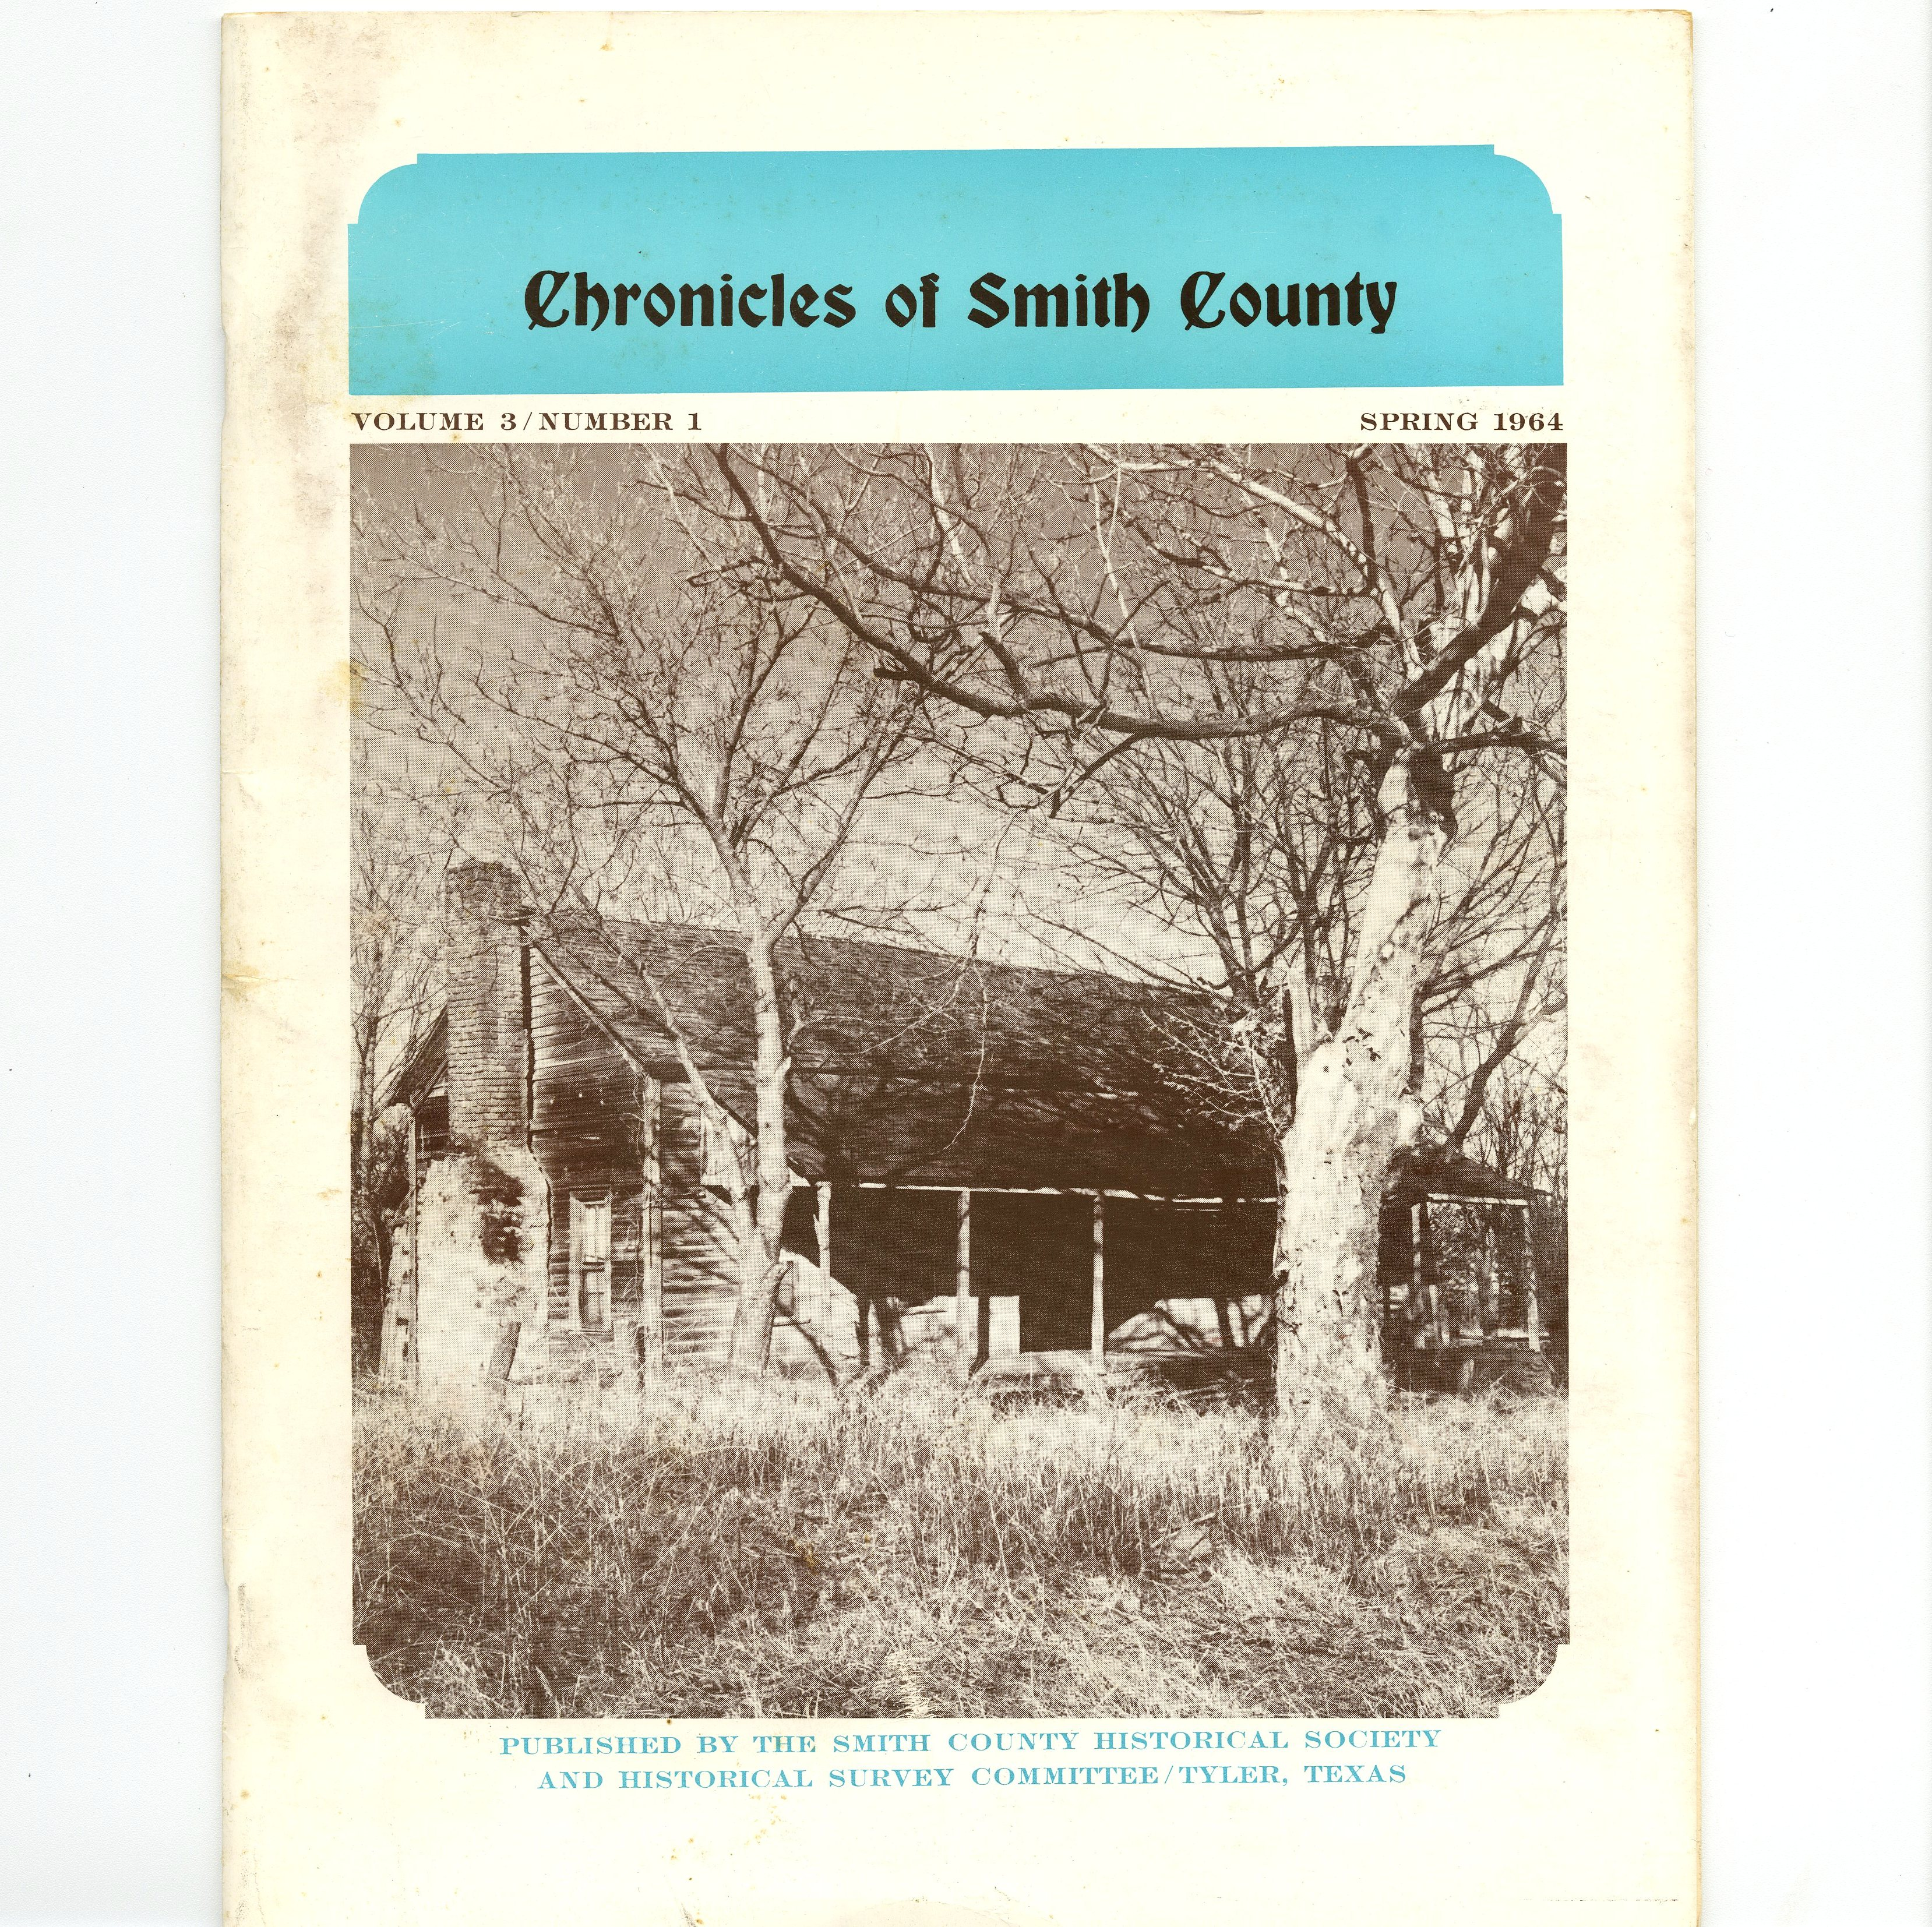 Chronicles of Smith County, Texas, Volume 3 Issue 1, Spring 1964.